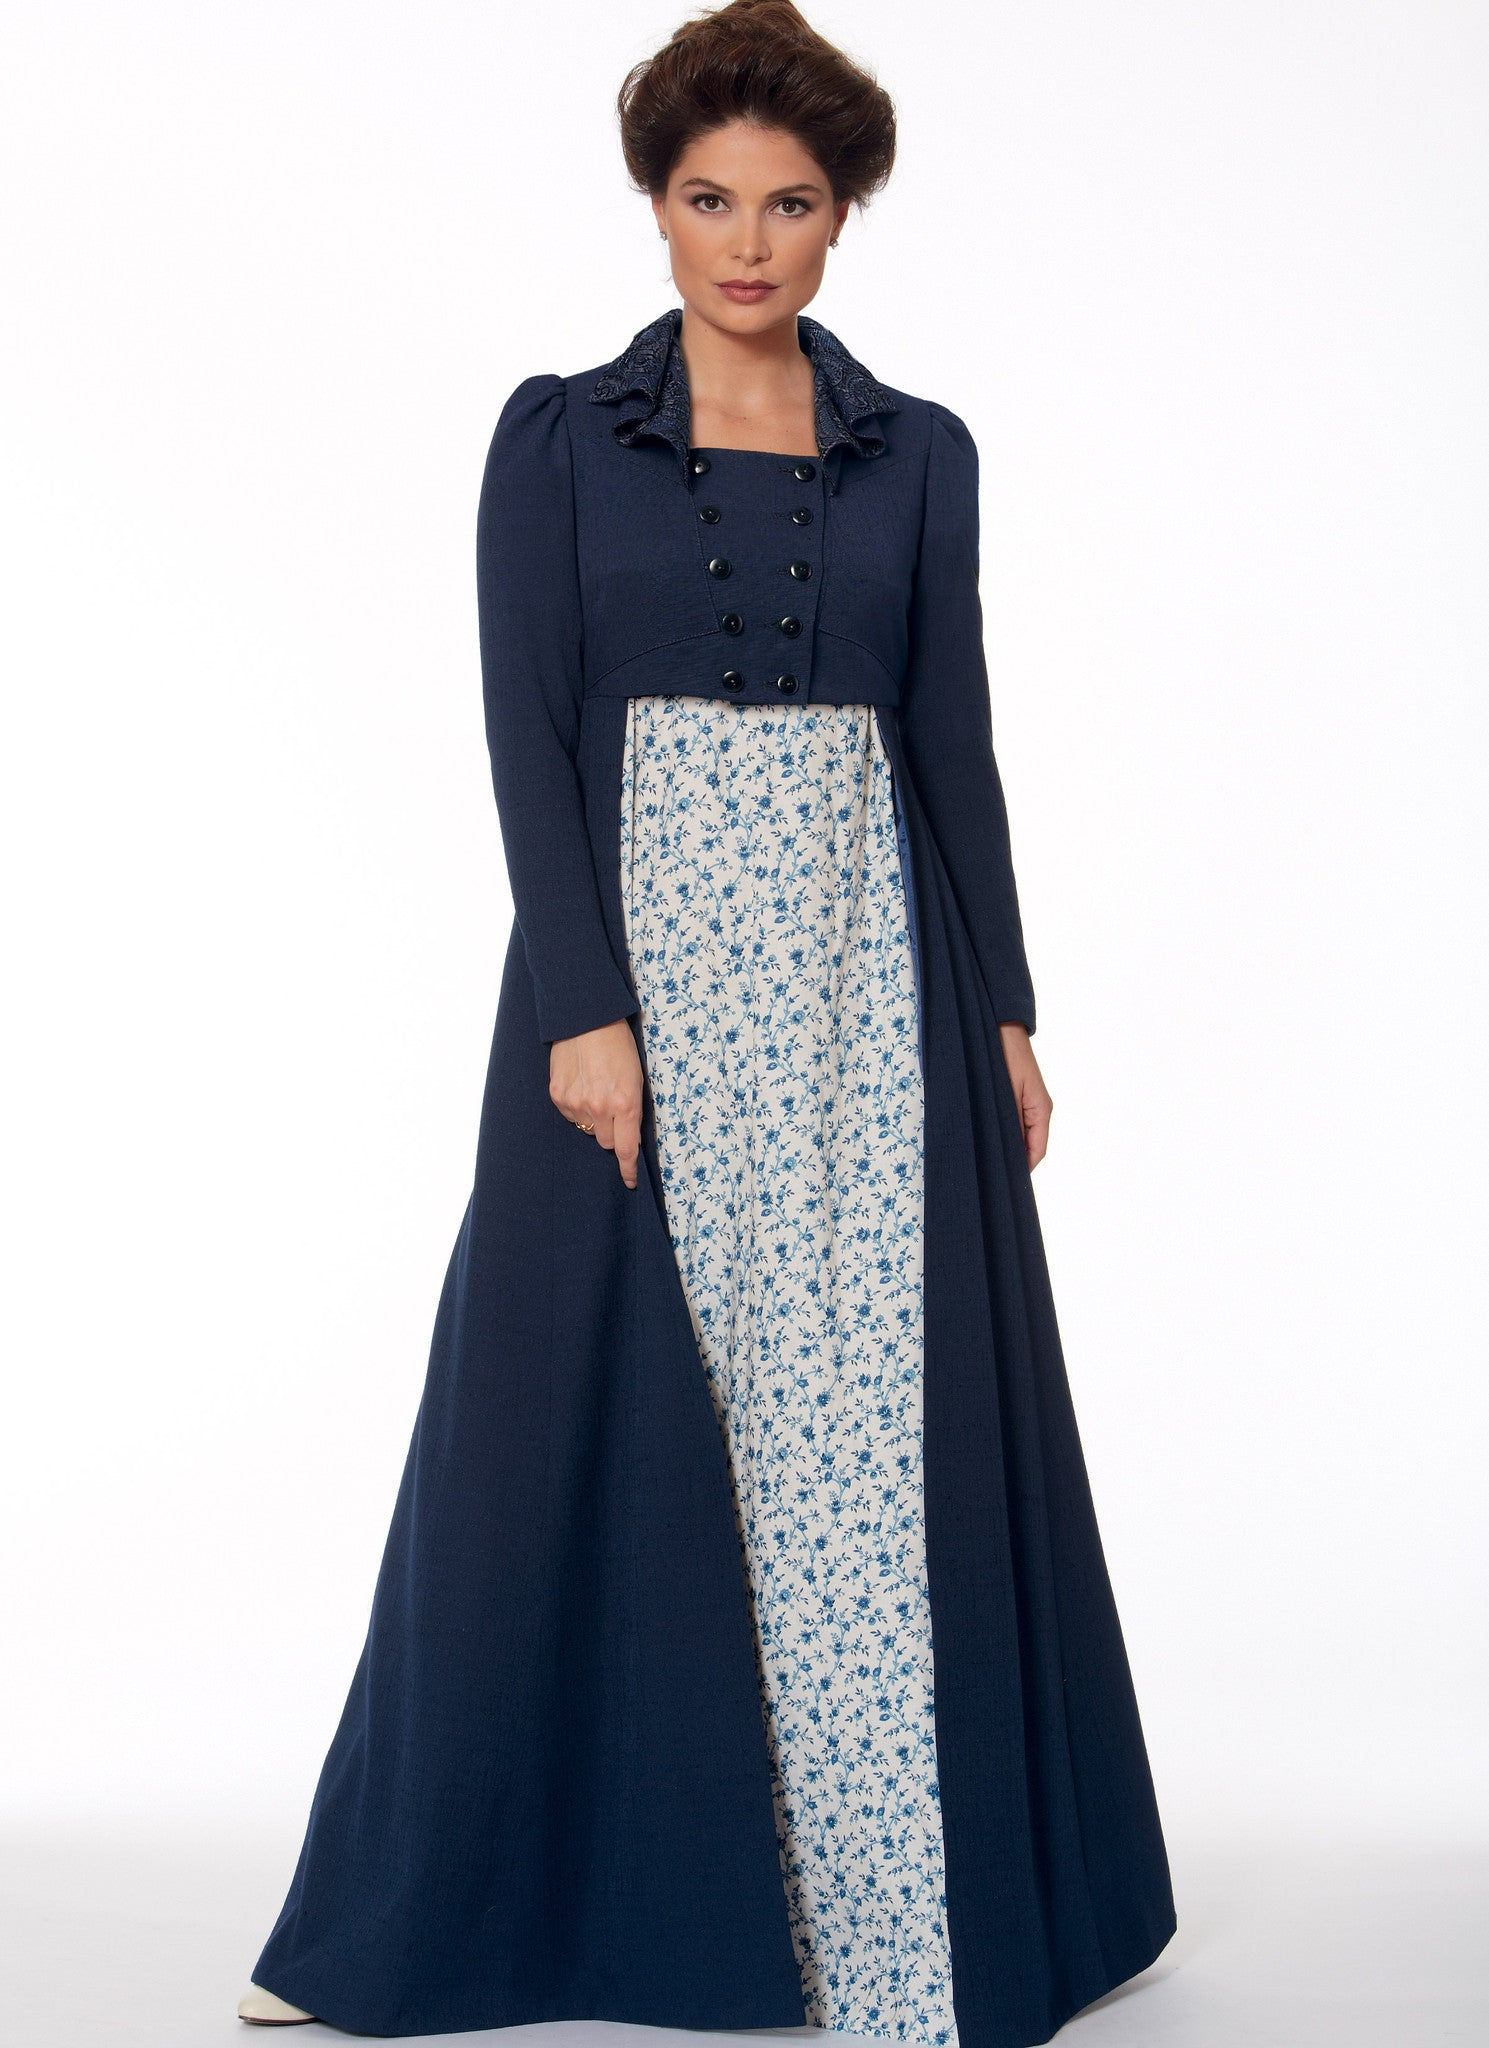 M7493 Cropped Jacket, Floor-Length Coat and A-Line, Square ...